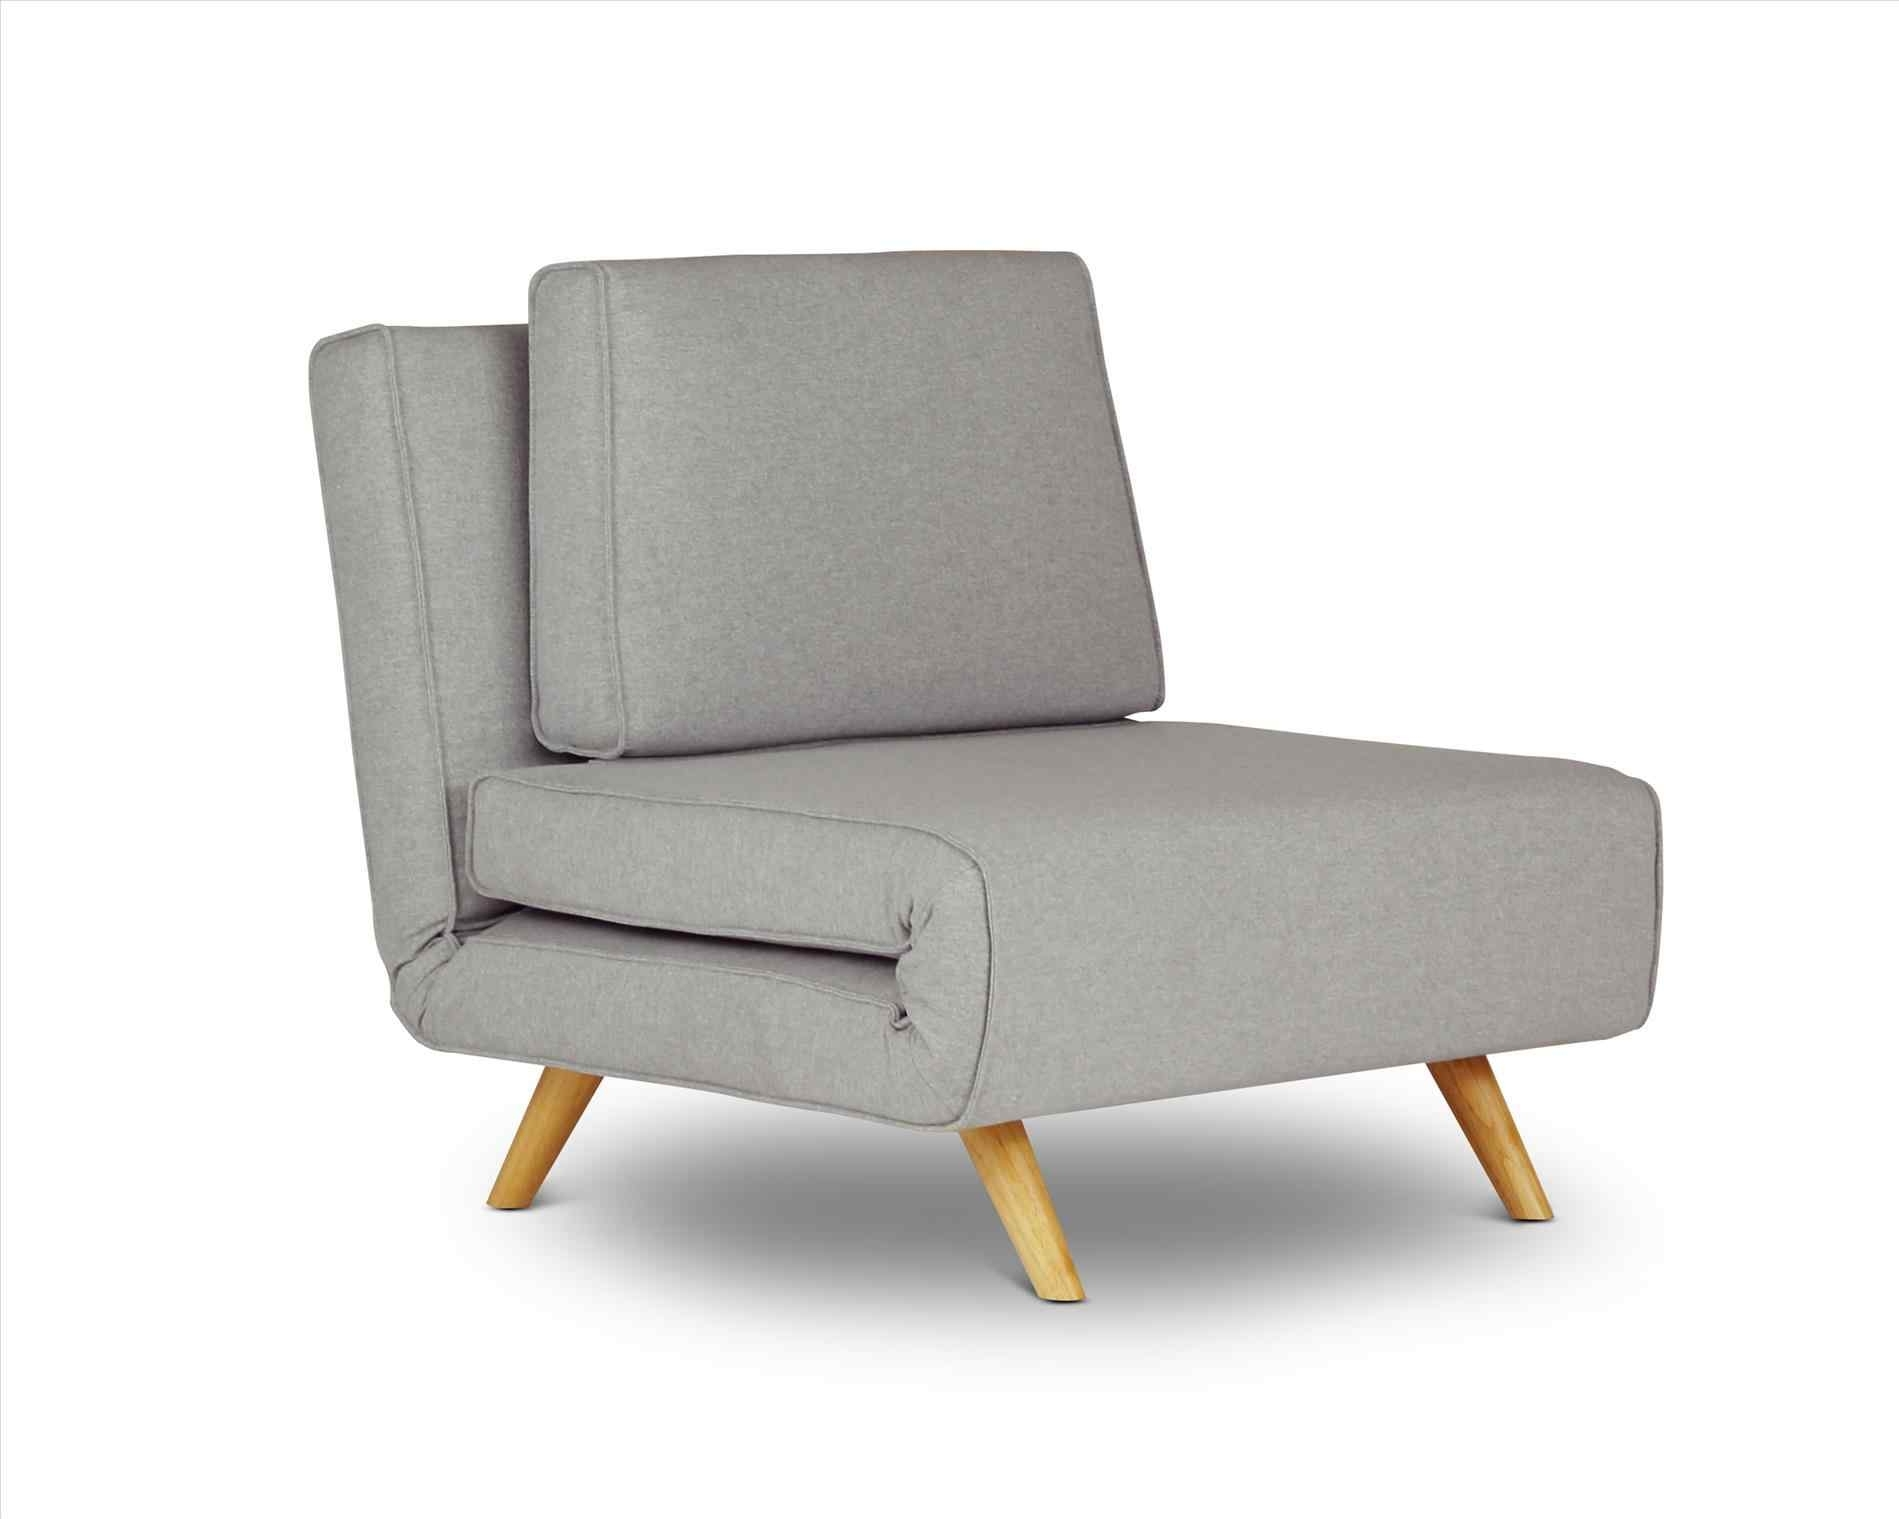 Lovely Single Seater Sofa In Sofas Marvelous Single Person Couch Pertaining To Single Sofas (Image 4 of 10)